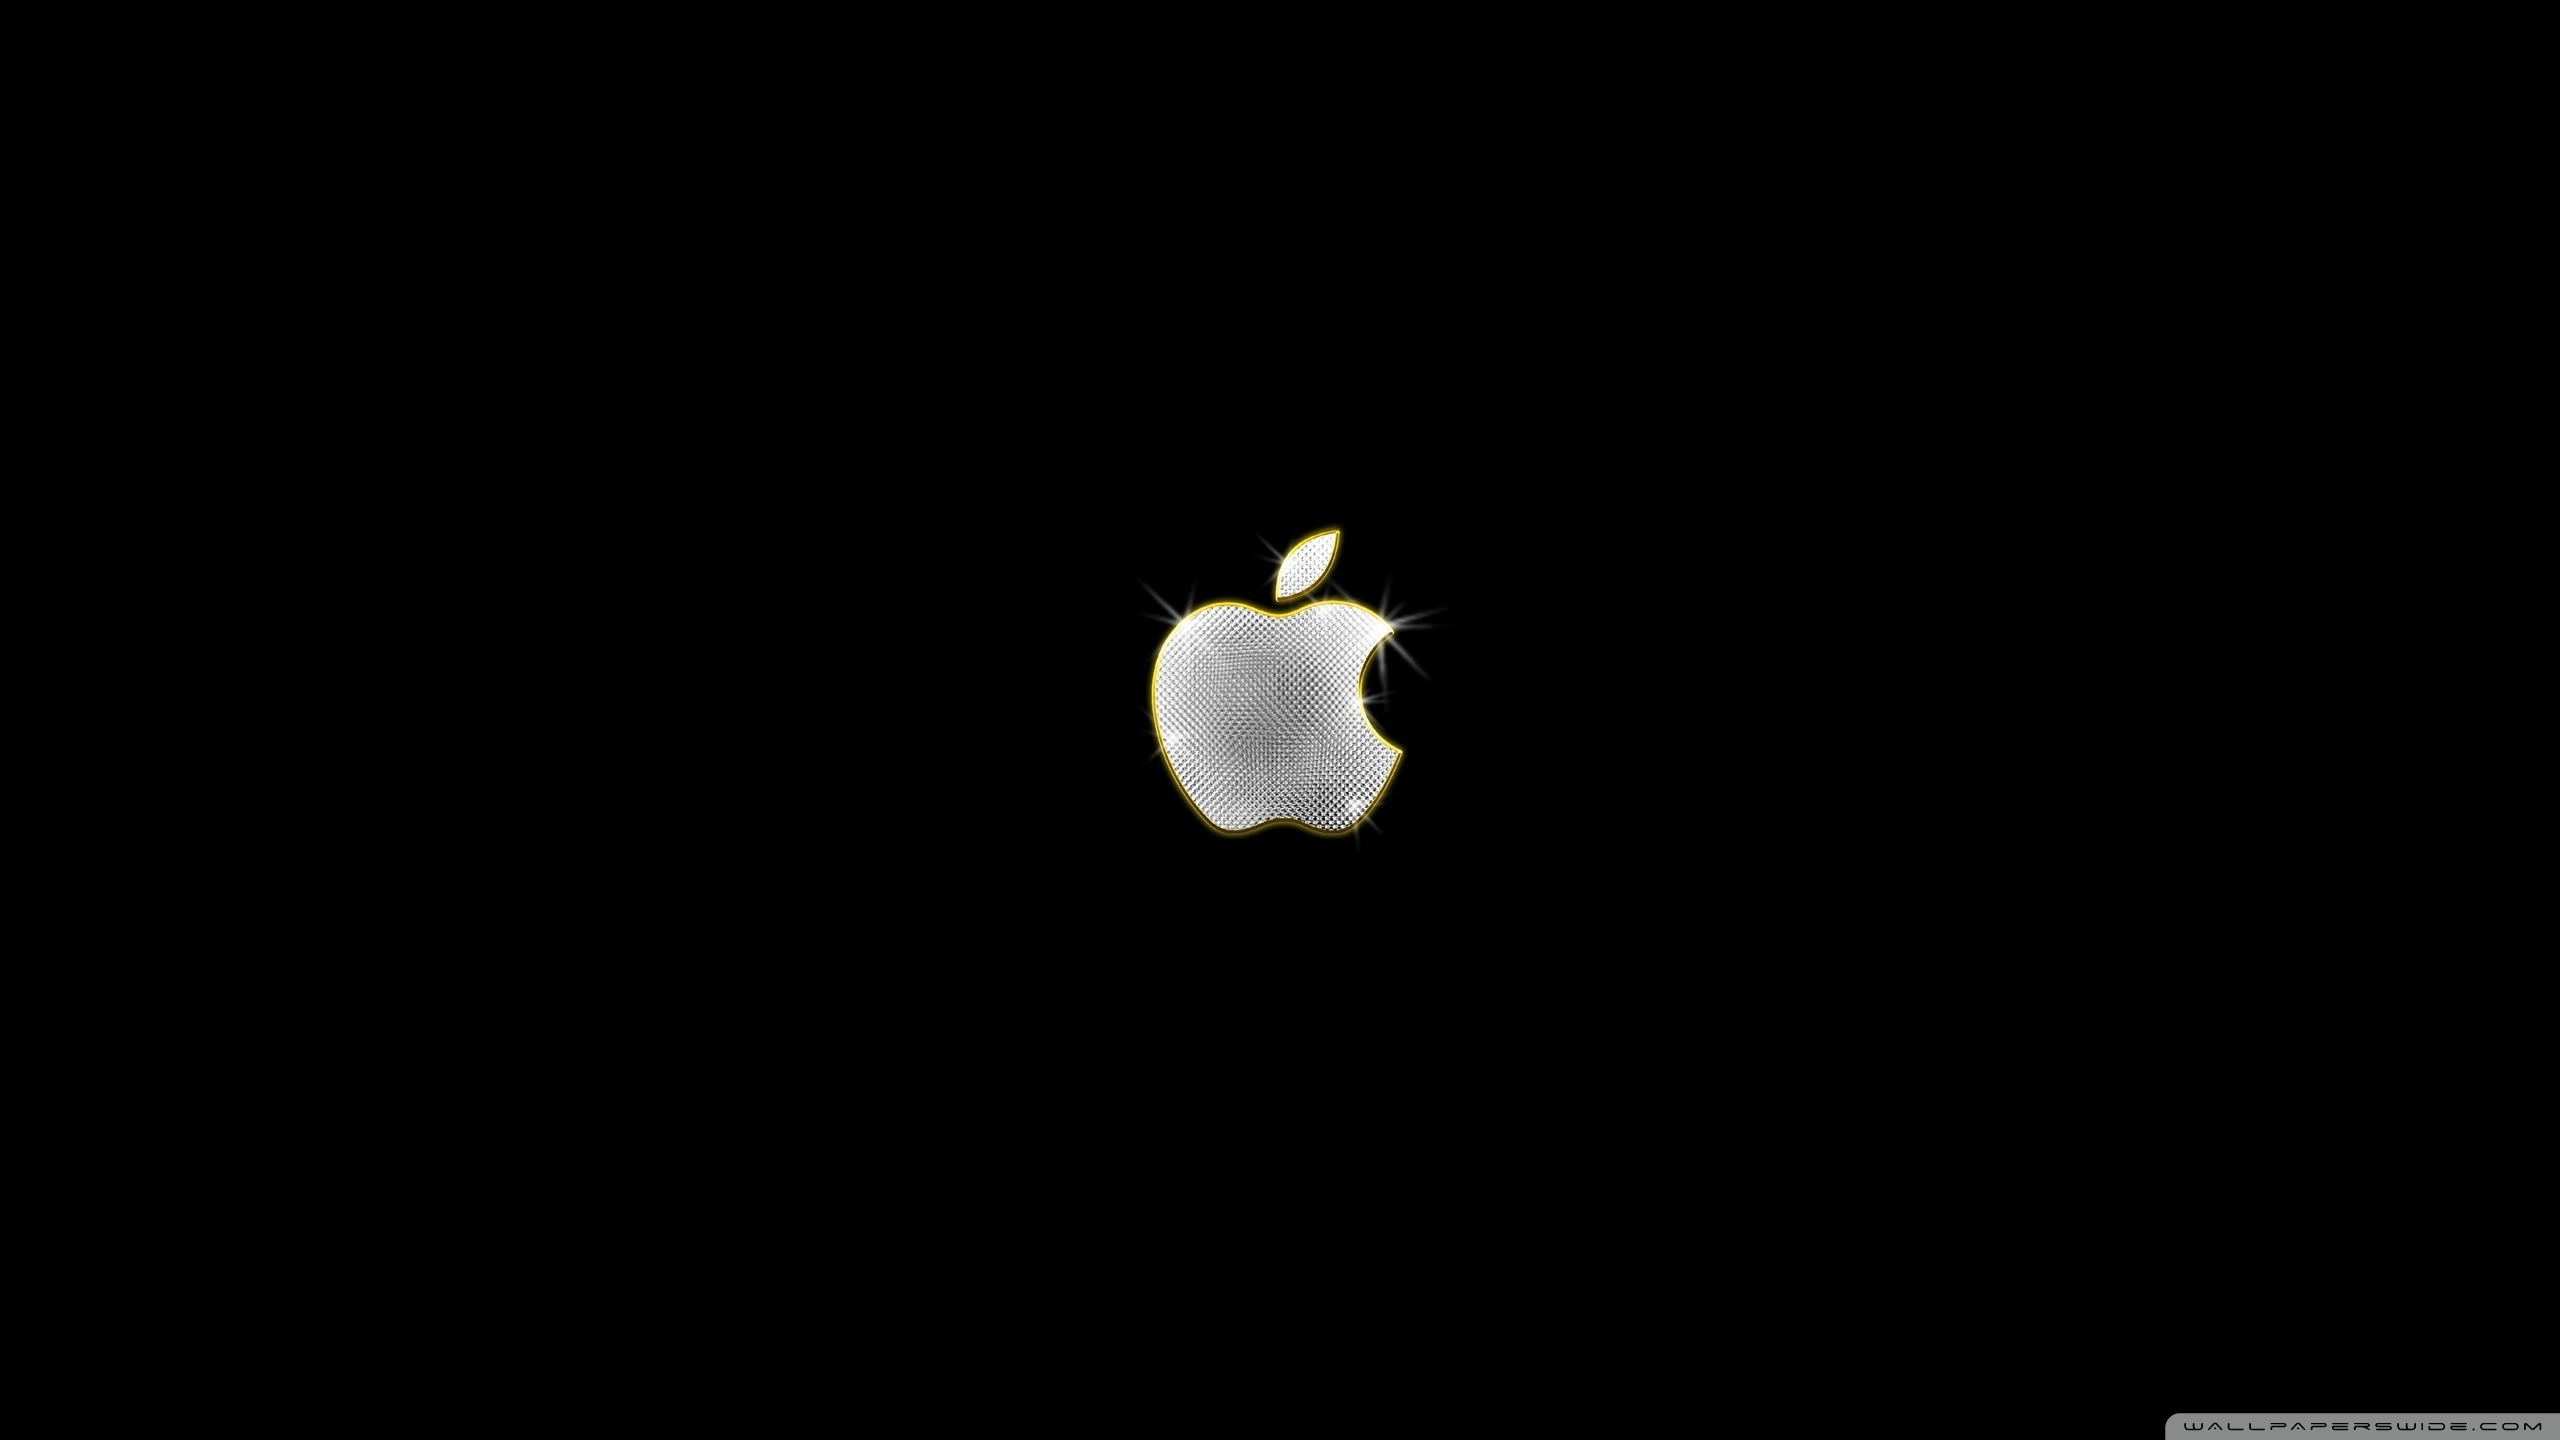 shiny apple logo ❤ 4k hd desktop wallpaper for 4k ultra hd tv